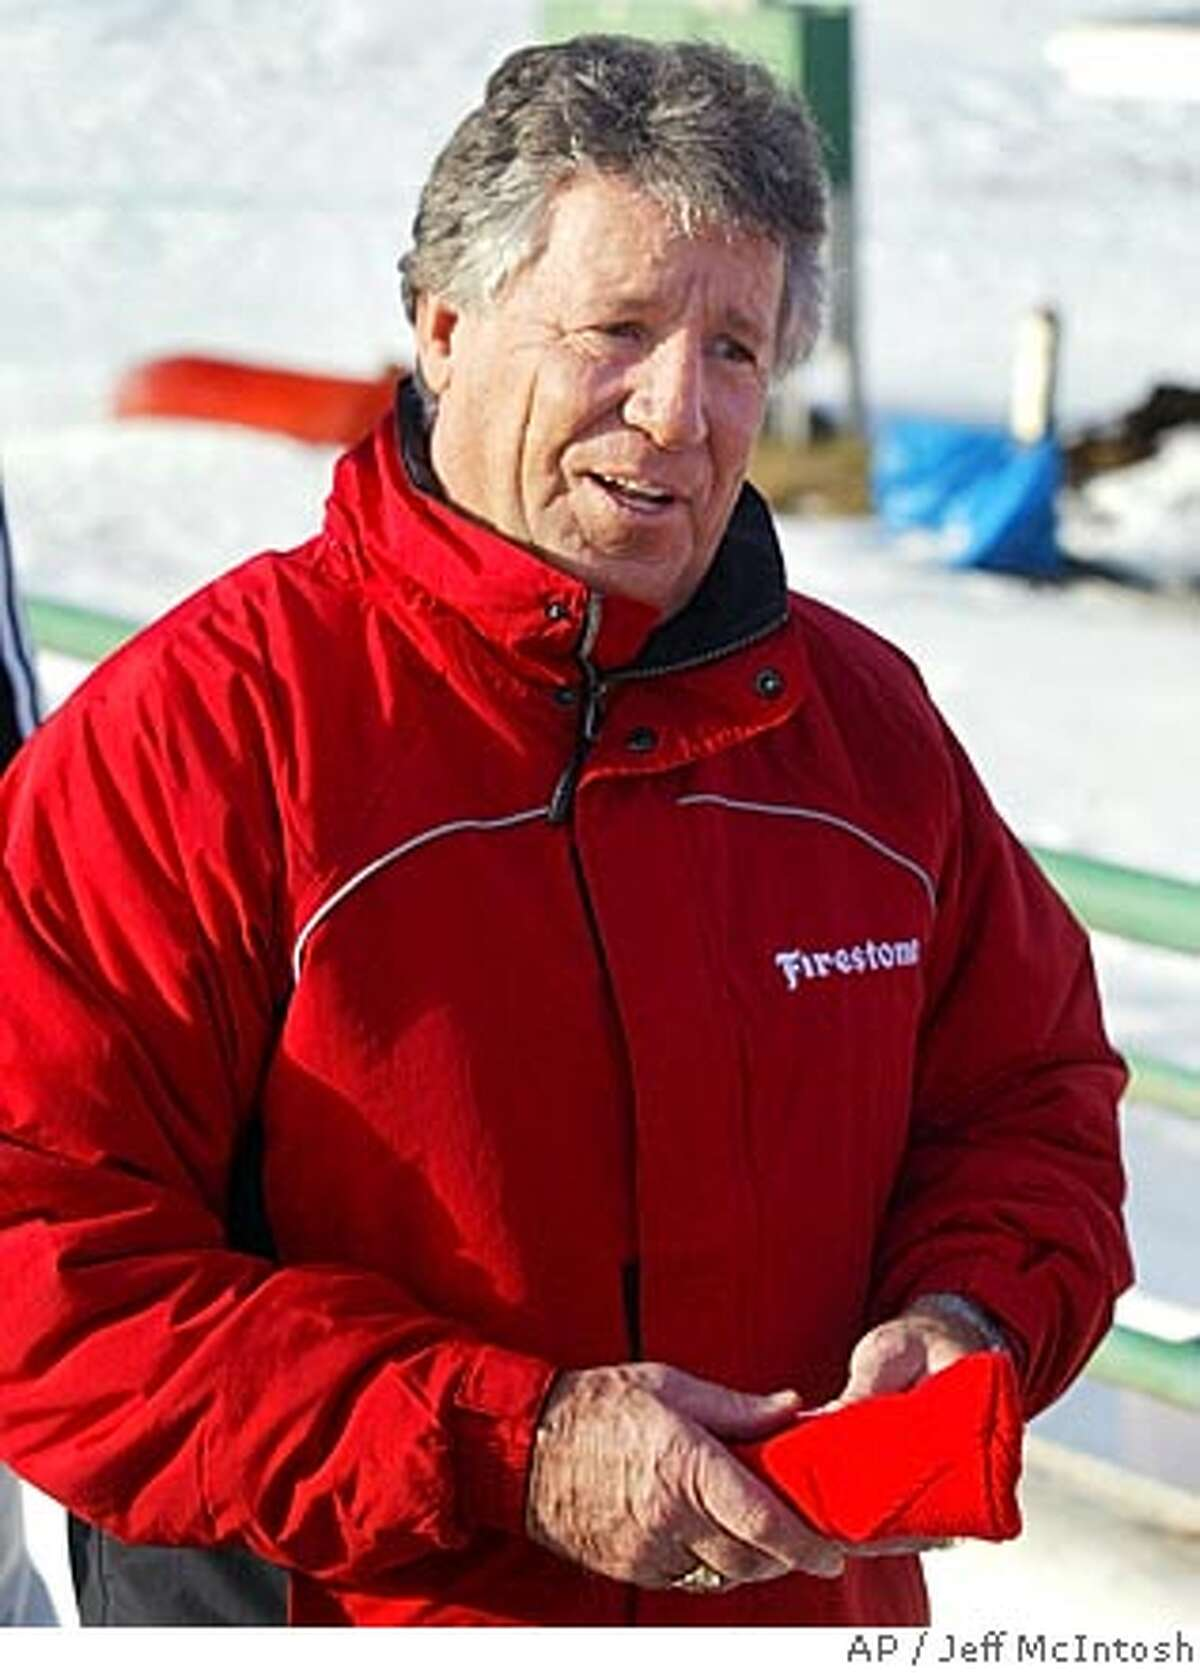 Former race car driver Mario Andretti smiles after riding a bobsled in Calgary, Wednesday, Jan. 19, 2005. Andretti was in the city promoting tires and wanted to try boblsedding. (AP Photo/Jeff McIntosh) Ran on: 01-29-2005 Mario Andretti was out for blood at Infineon Raceway on Friday, and he got it.